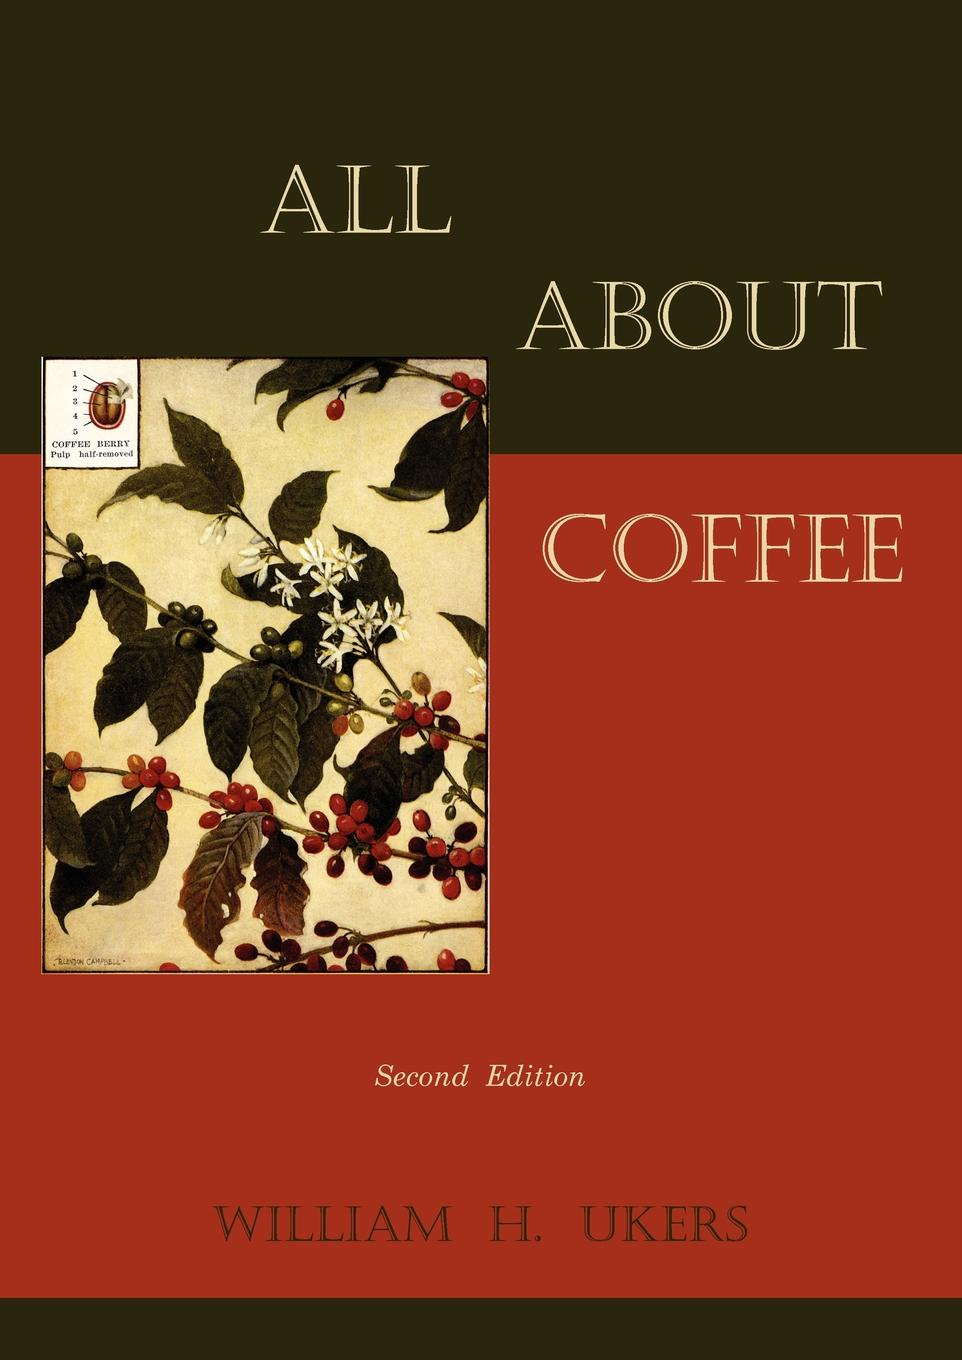 лучшая цена William H. Ukers All about Coffee (Second Edition)